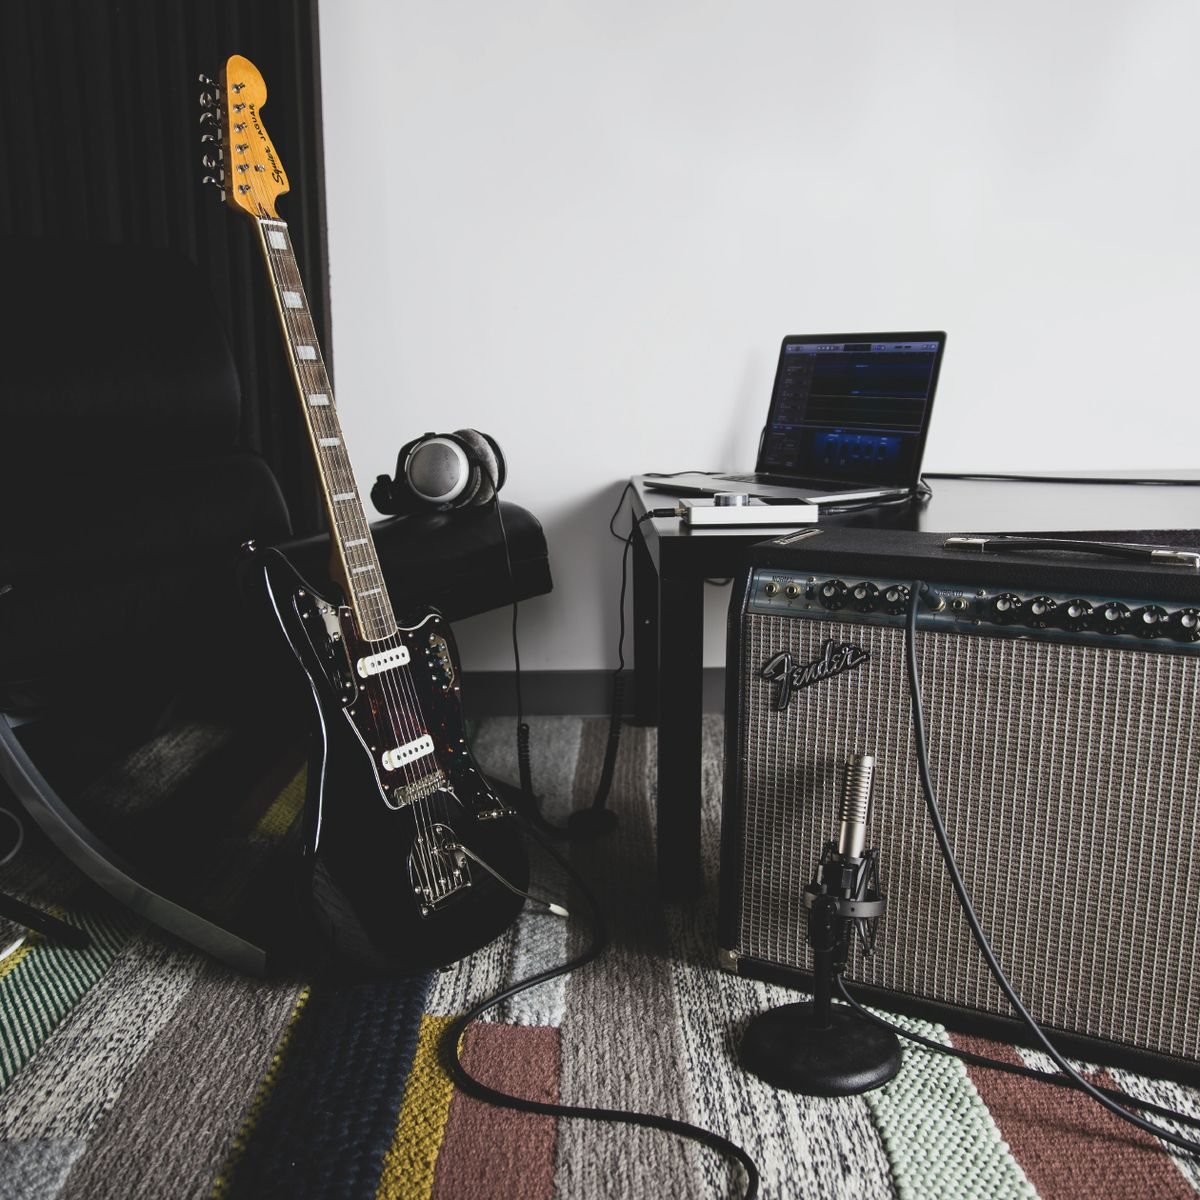 10 Recording Mistakes Guitarists Make (And How to Avoid Them)